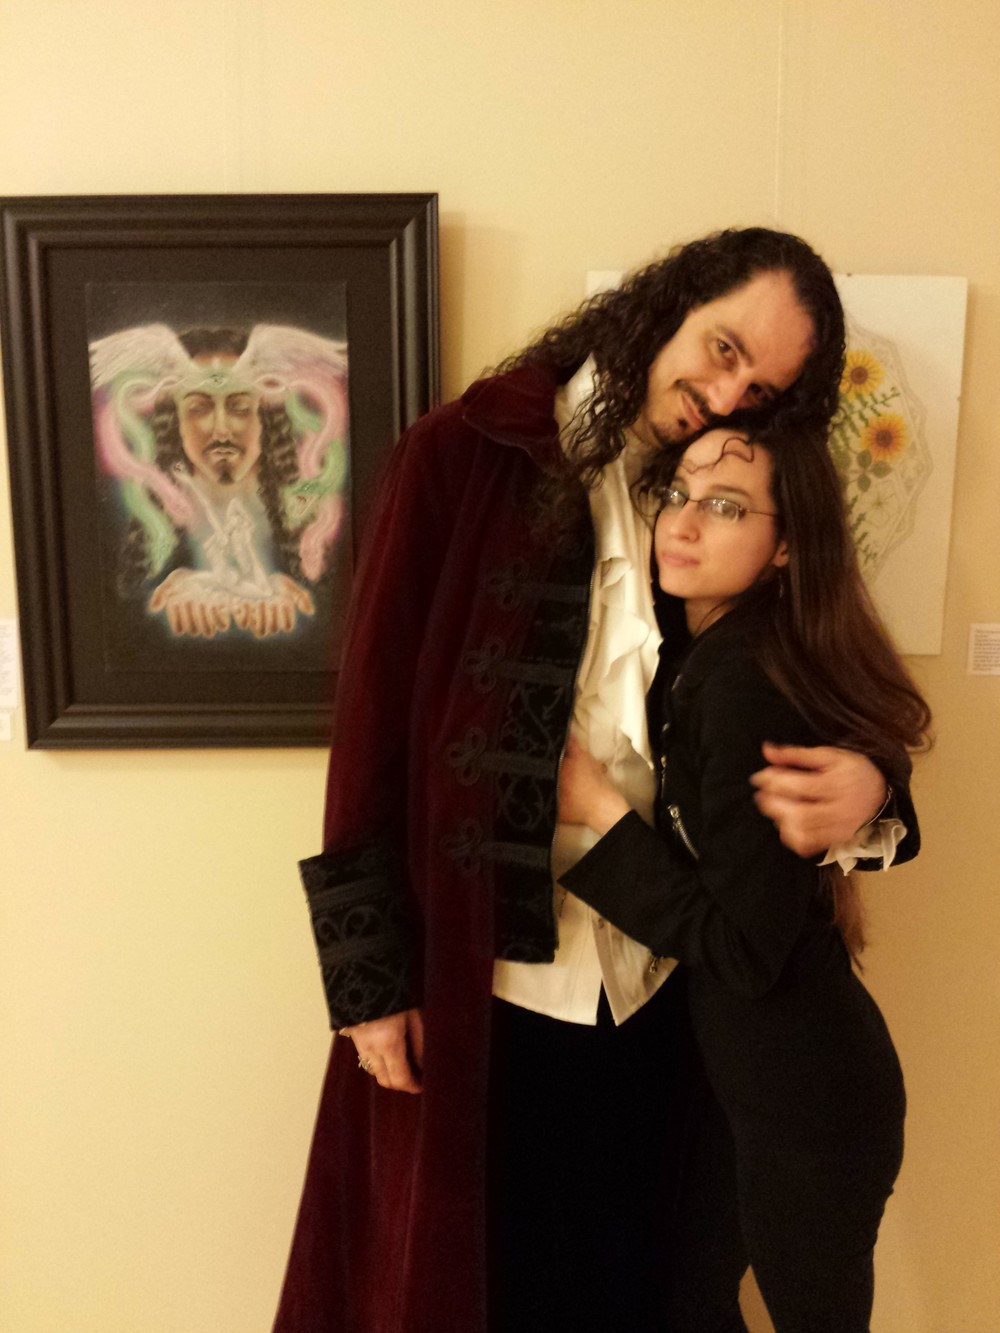 Me and my muse-man